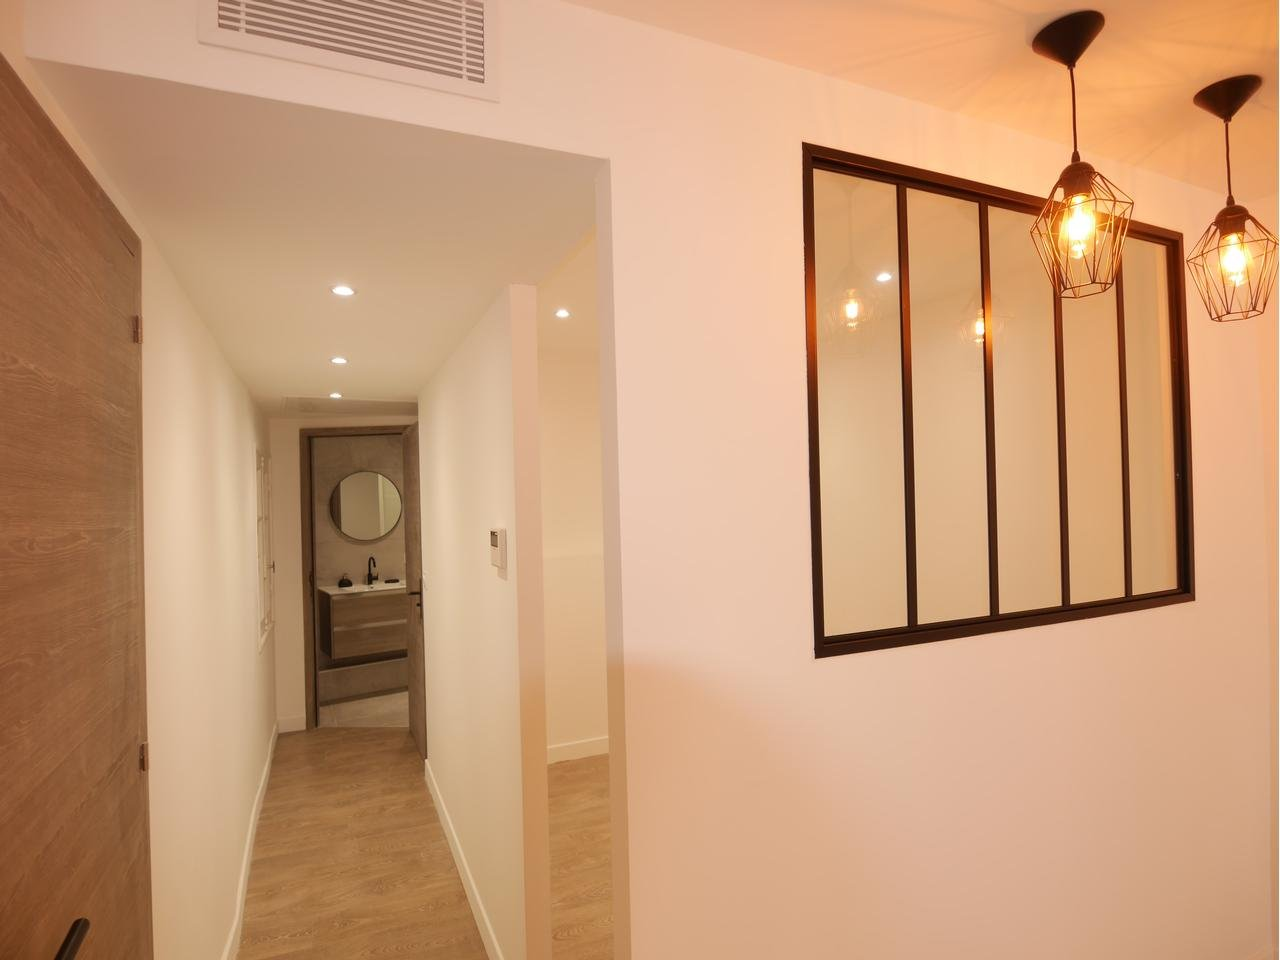 Appartement  2 Rooms 42.94m2  for sale   255 000 €